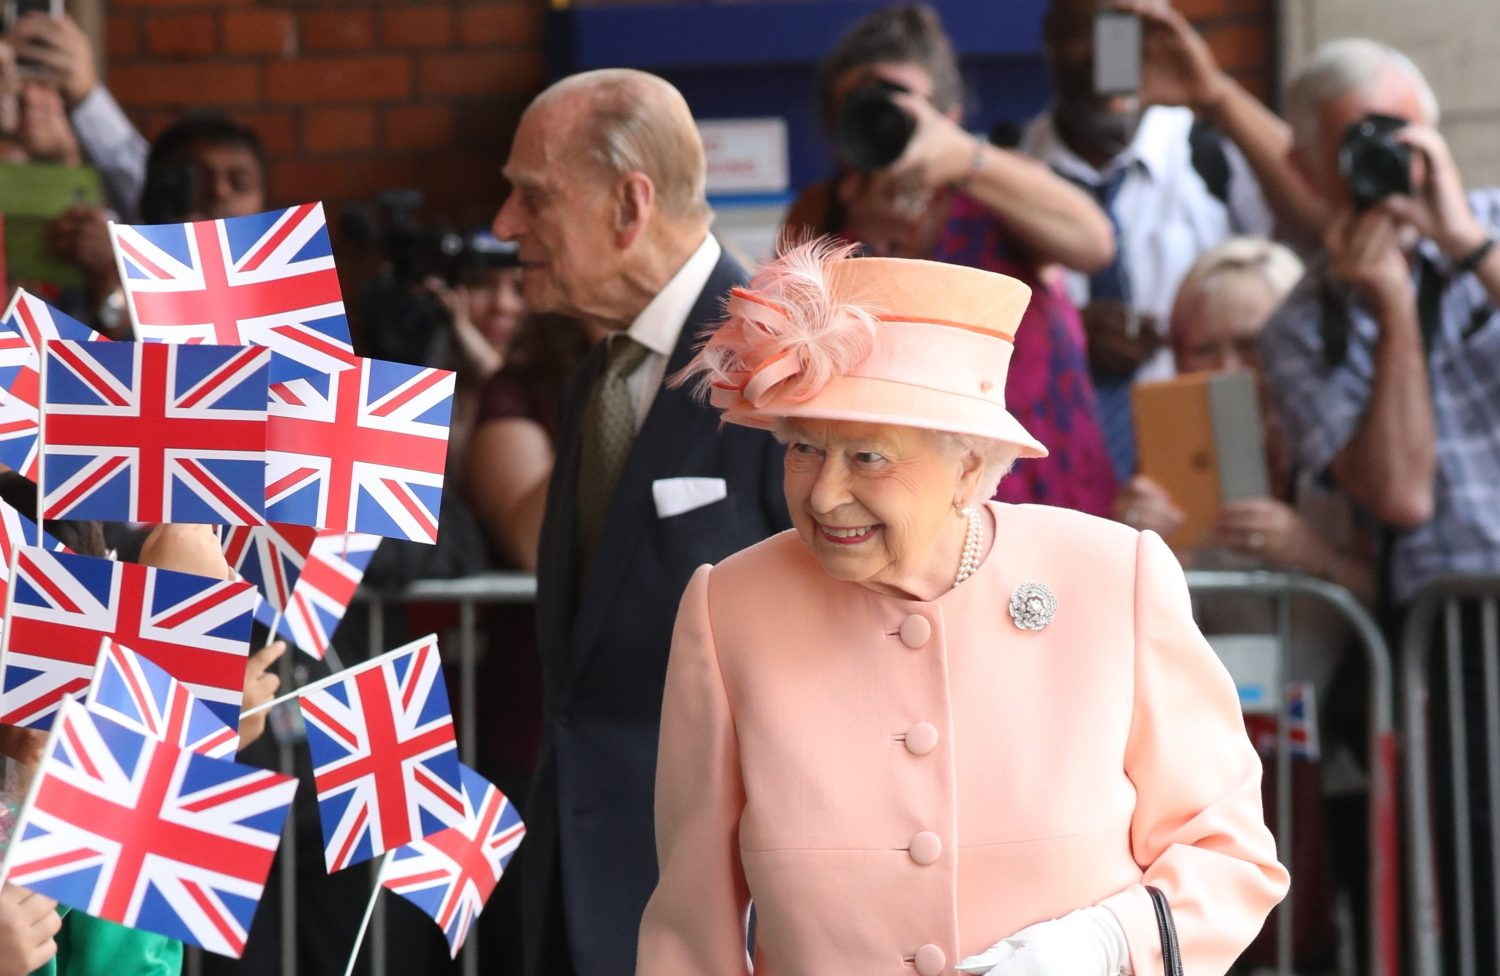 The Queen will host the first garden party of the year this coming week. Picture by Stephen Lock / i-Images